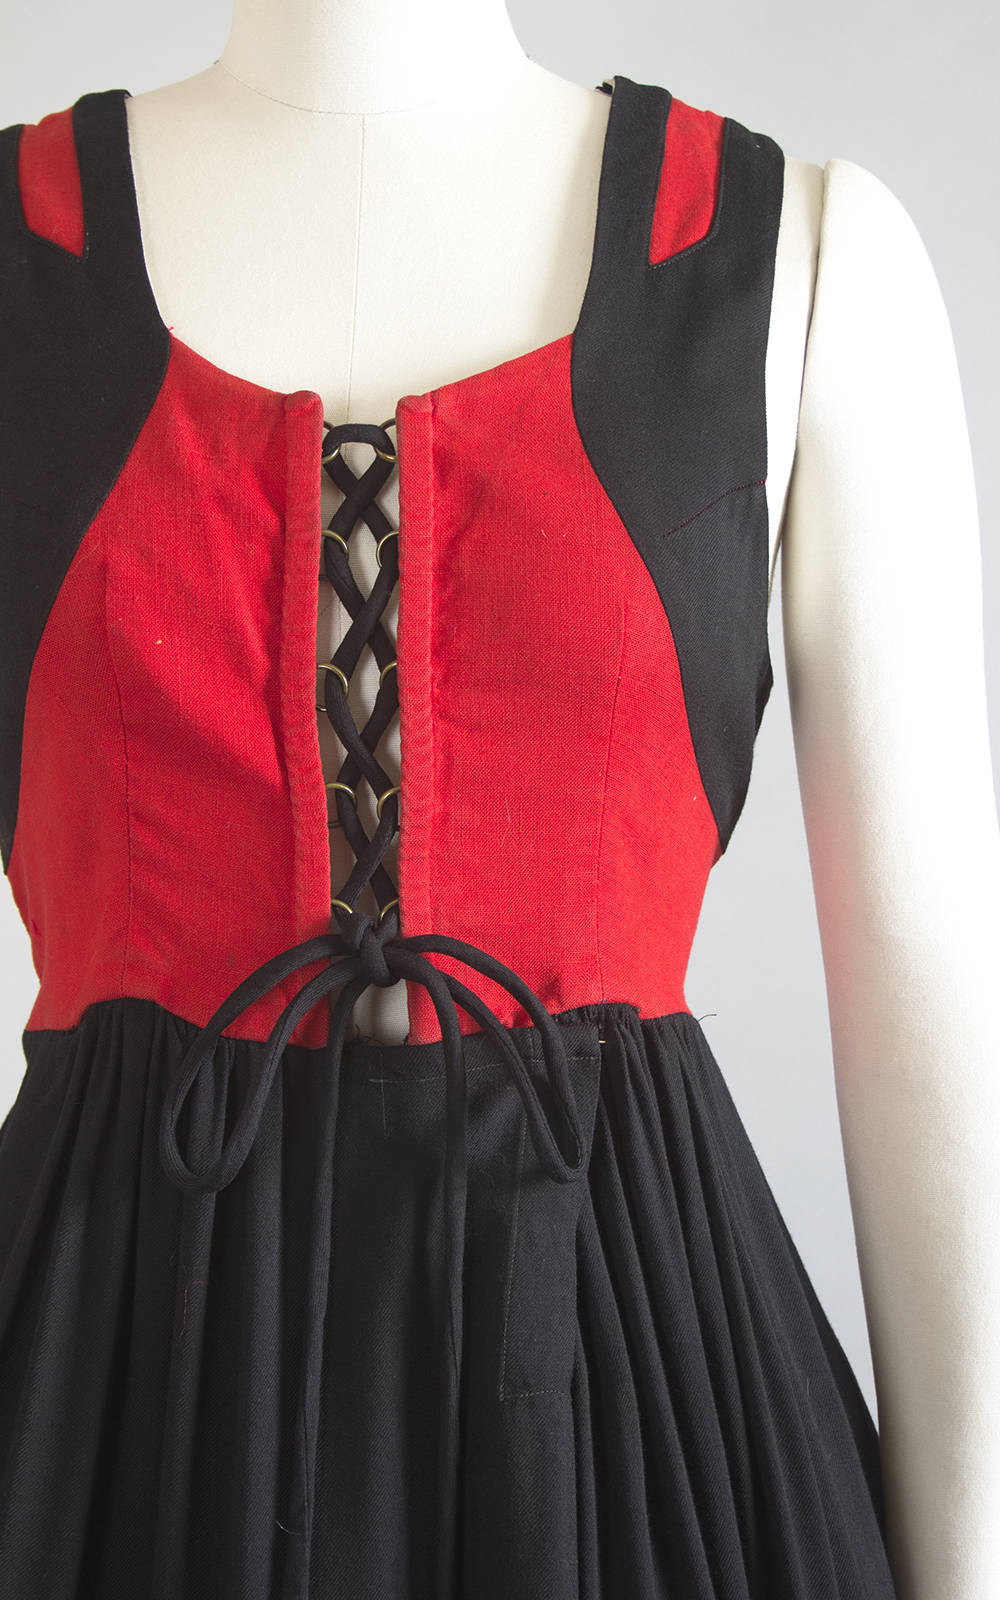 Vintage 1950s 1960s Dress | 50s 60s Traditional German Dirndl Cotton Lace Up Oktoberfest Red Black Full Skirt Folk Sundress (large/xl)